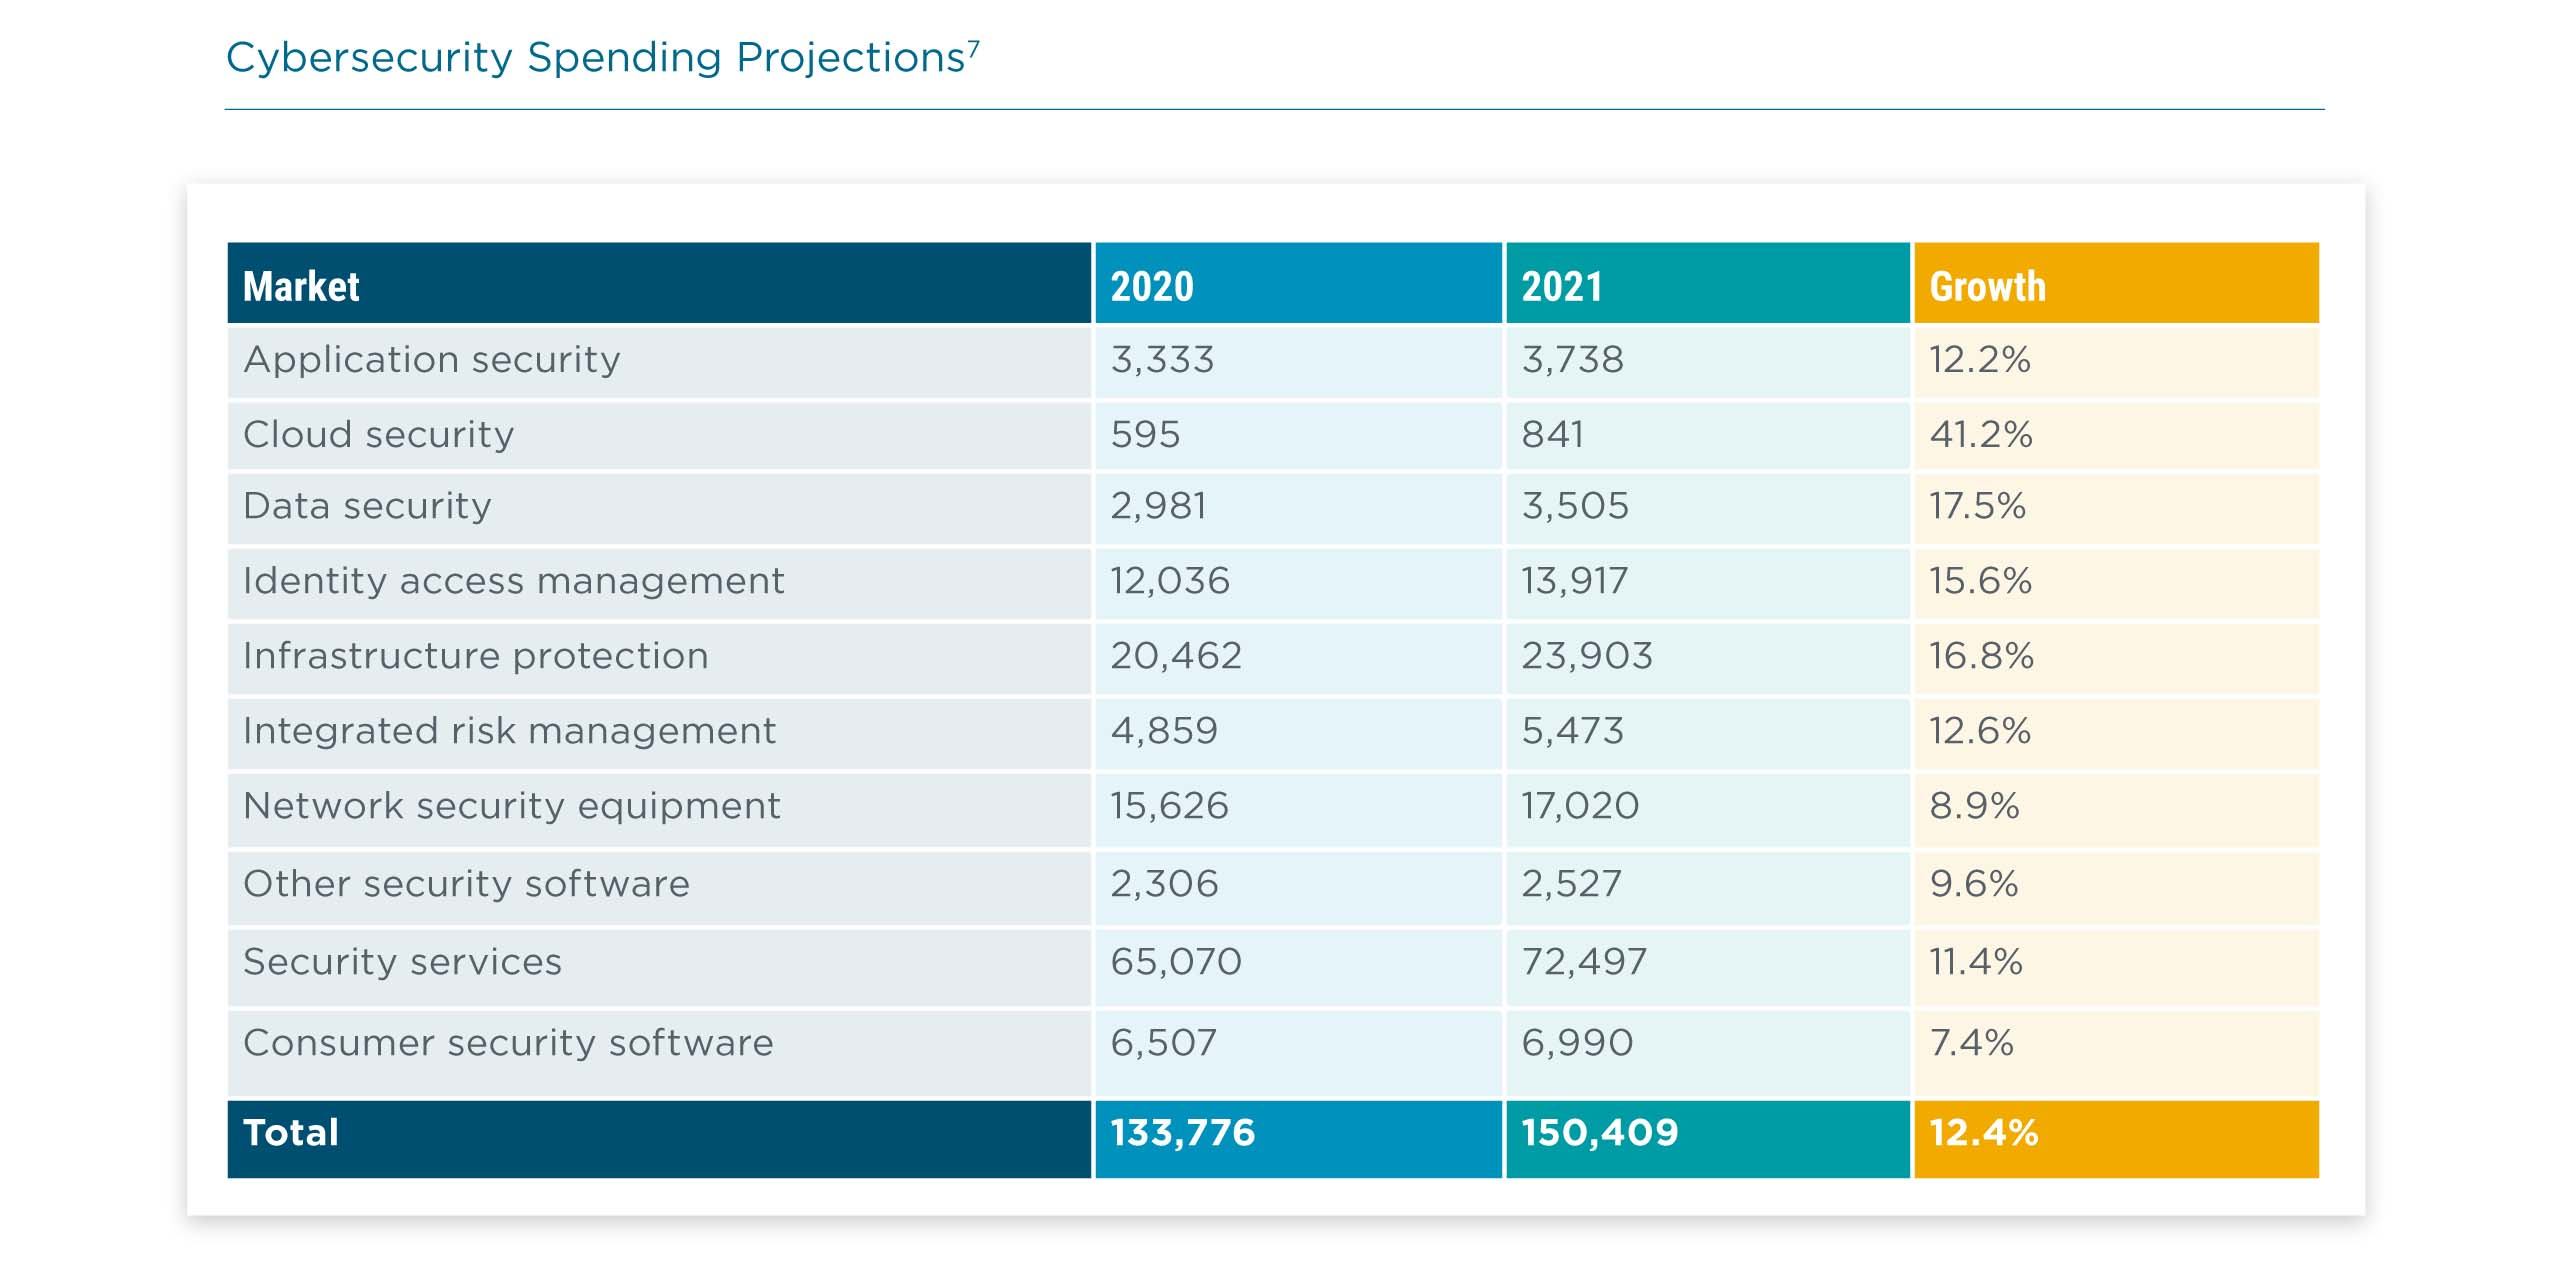 Cybersecurity Spending Projections